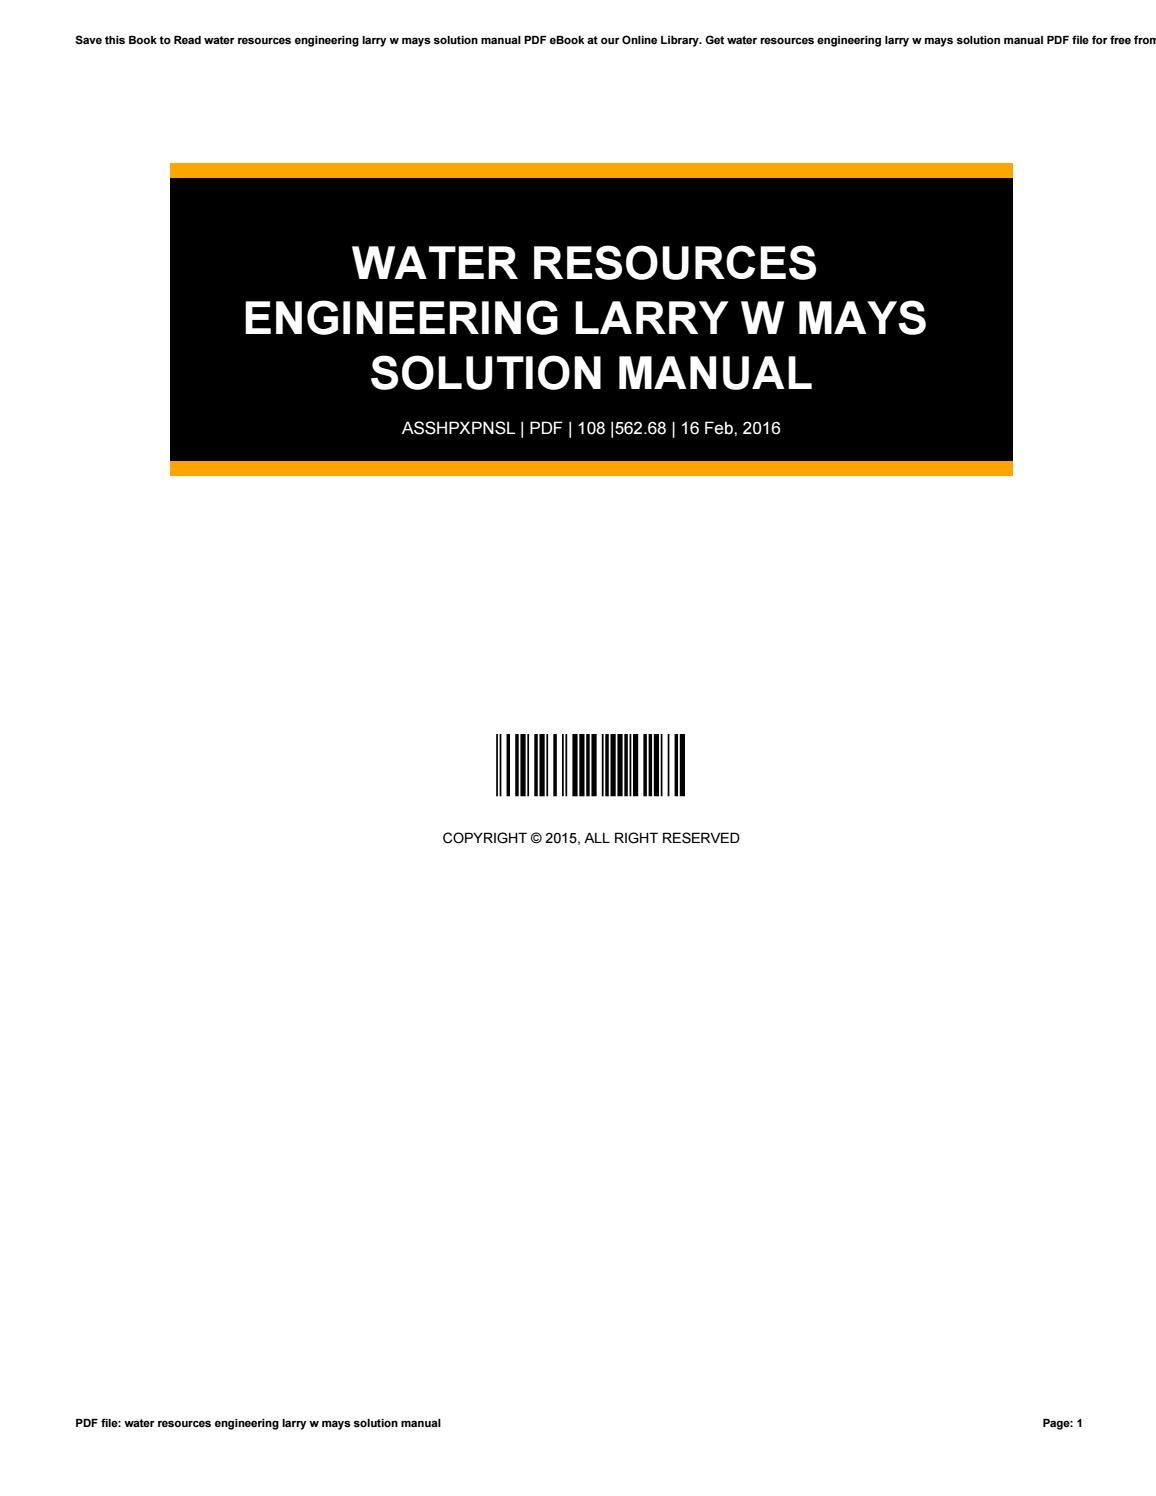 Water resources engineering larry w mays solution manual by  ThomasKohlmeier2906 - issuu